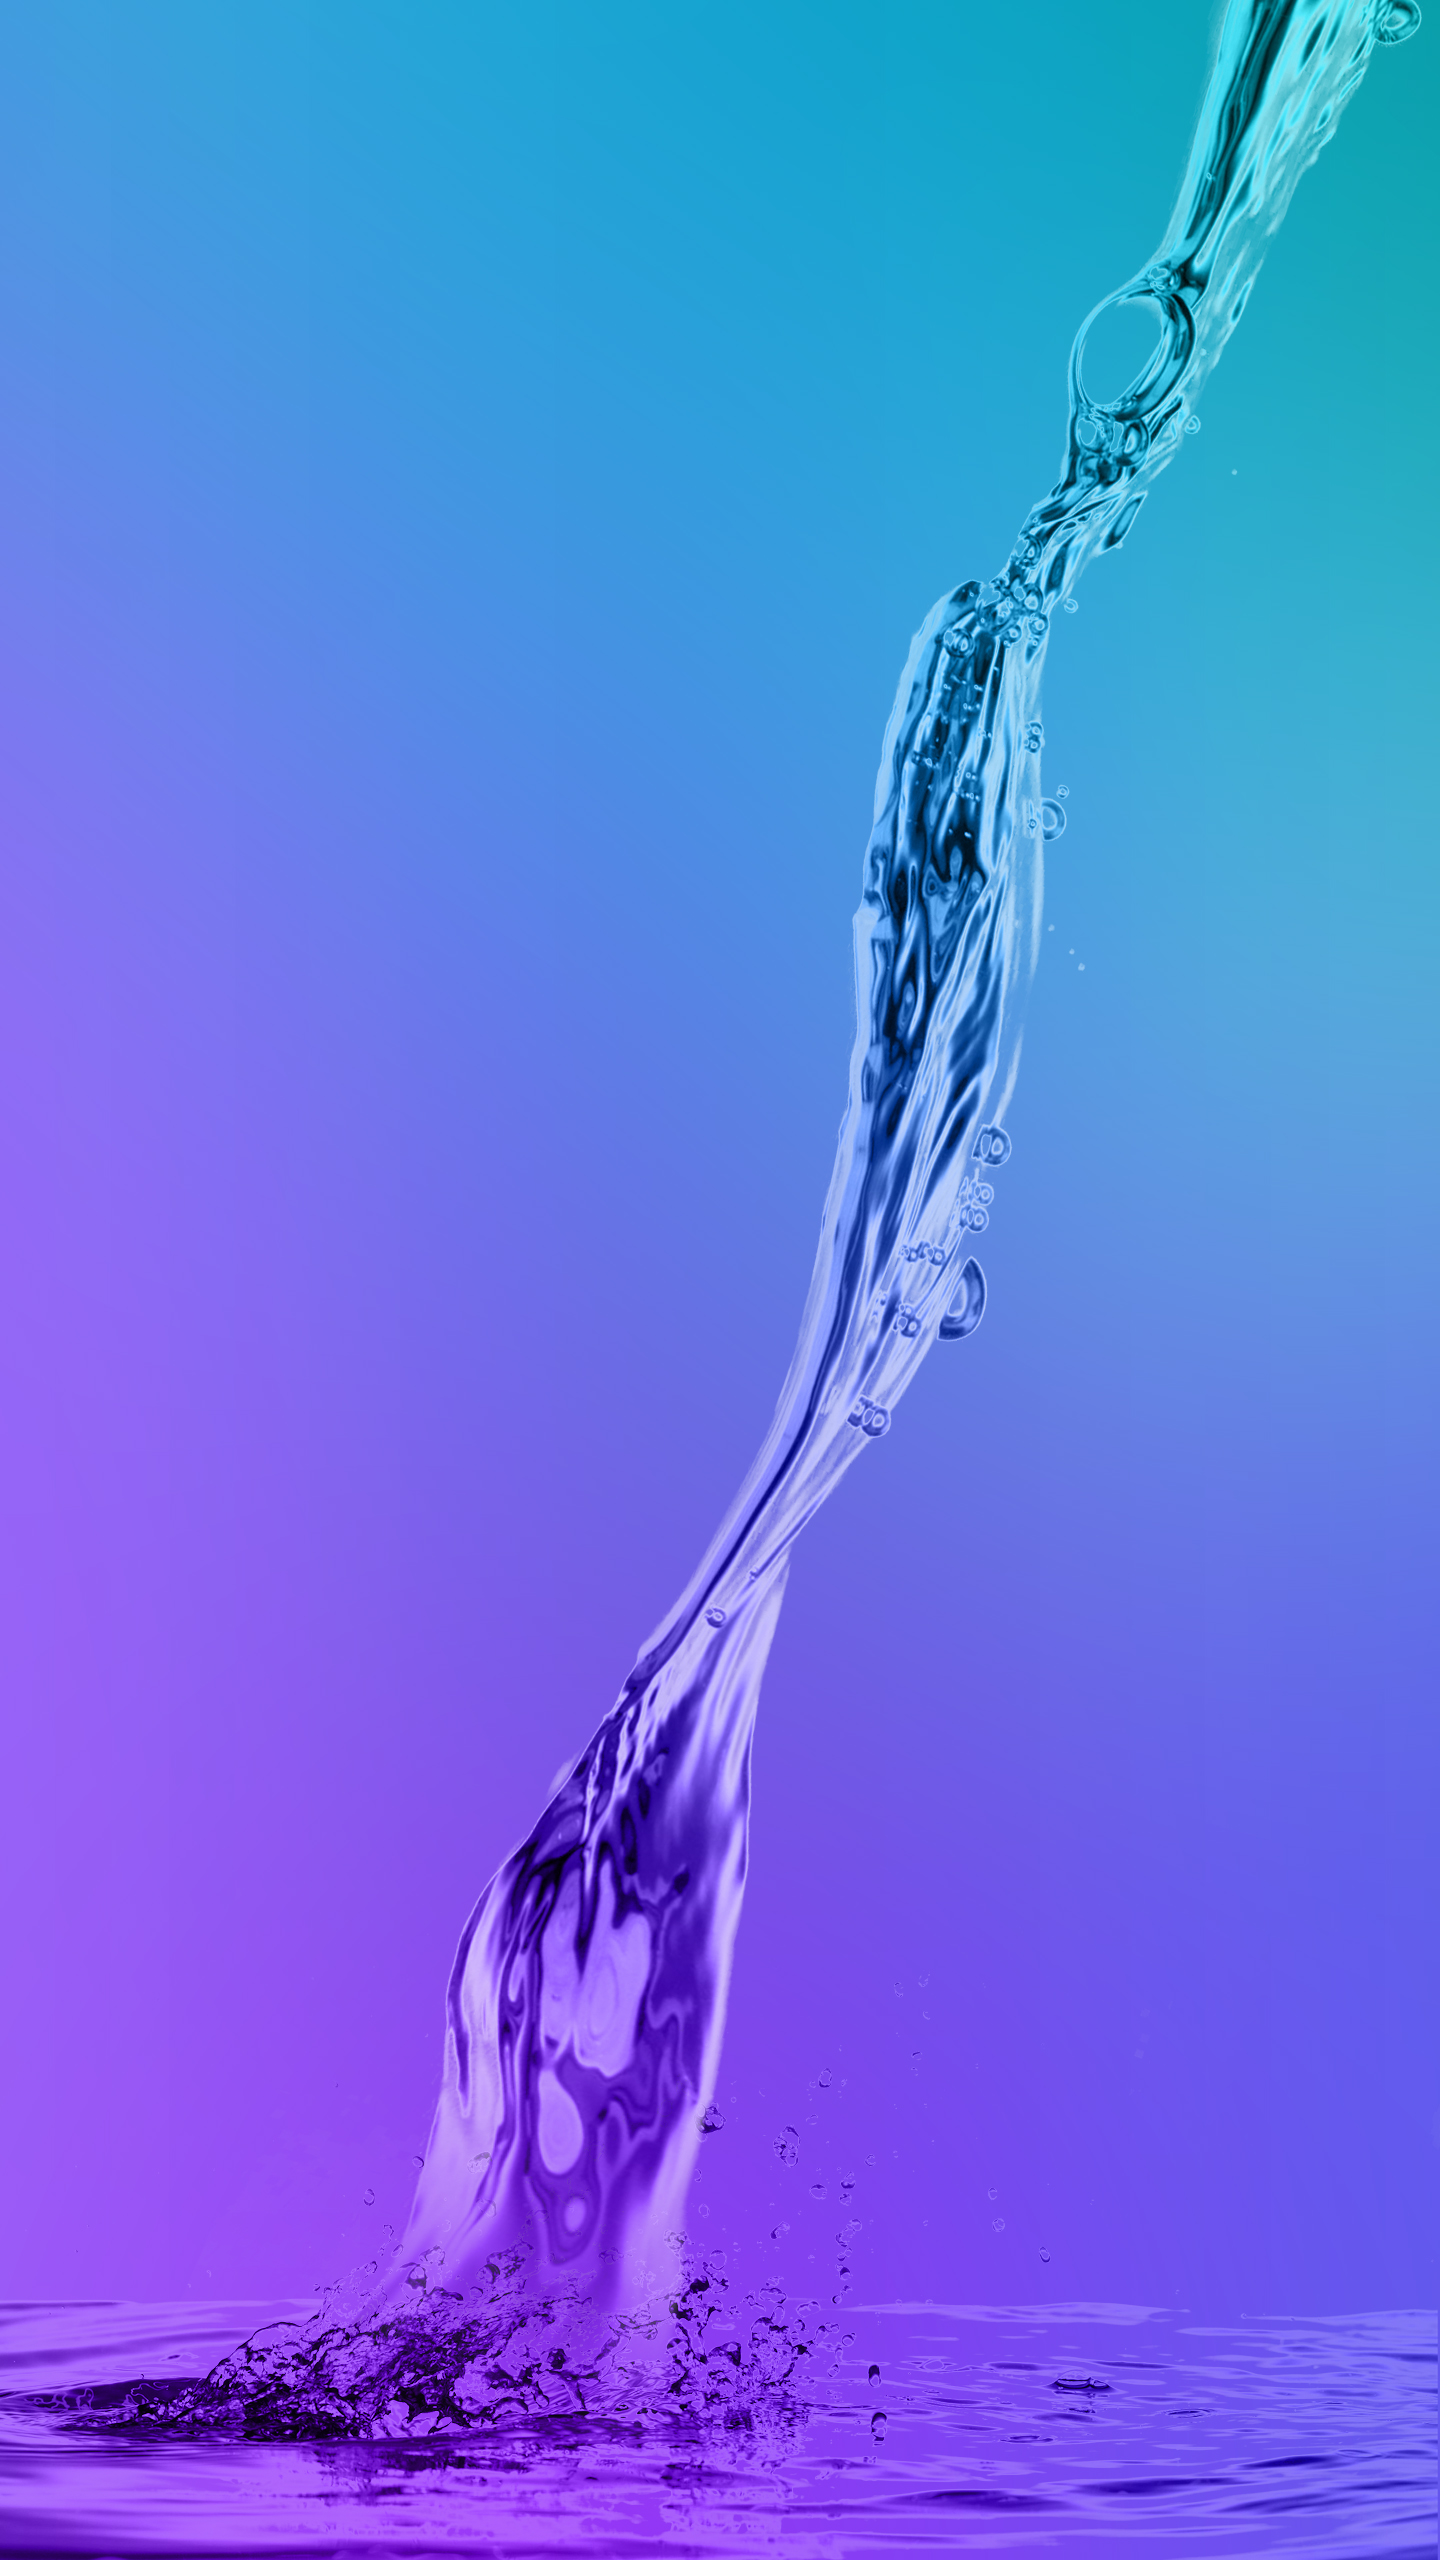 Hd wallpaper s7 edge - Water Drop Wallpapers Hd Galaxy S7 Edge Click Here To Download